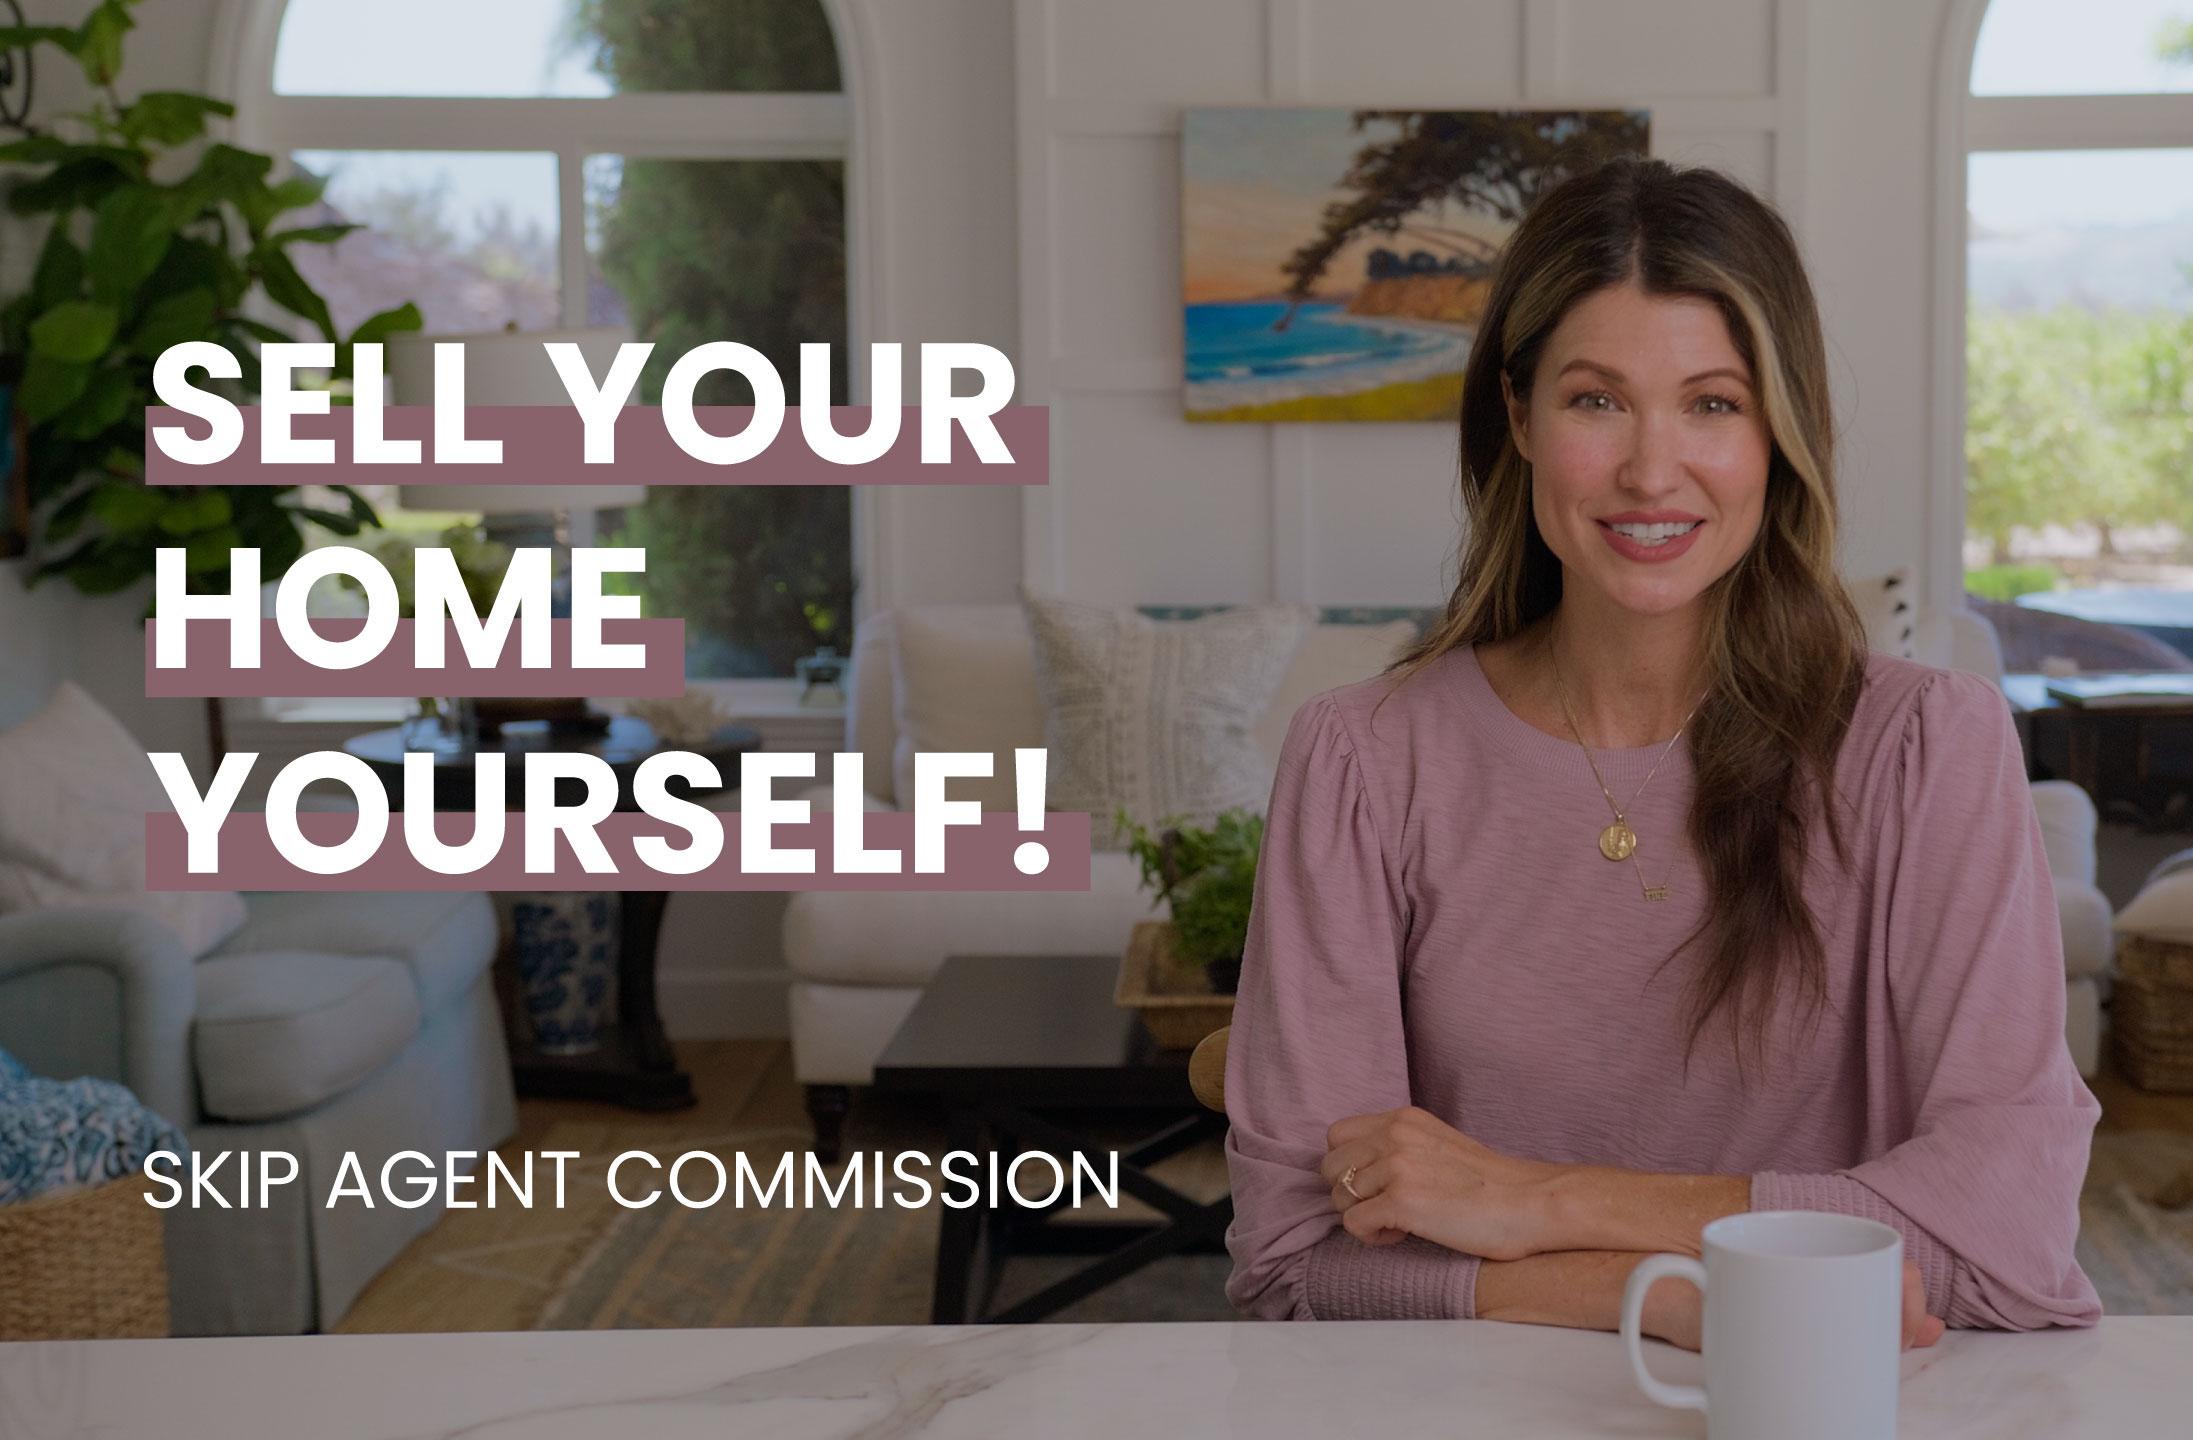 A homeowner sitting at her house explaining how to sell your own home